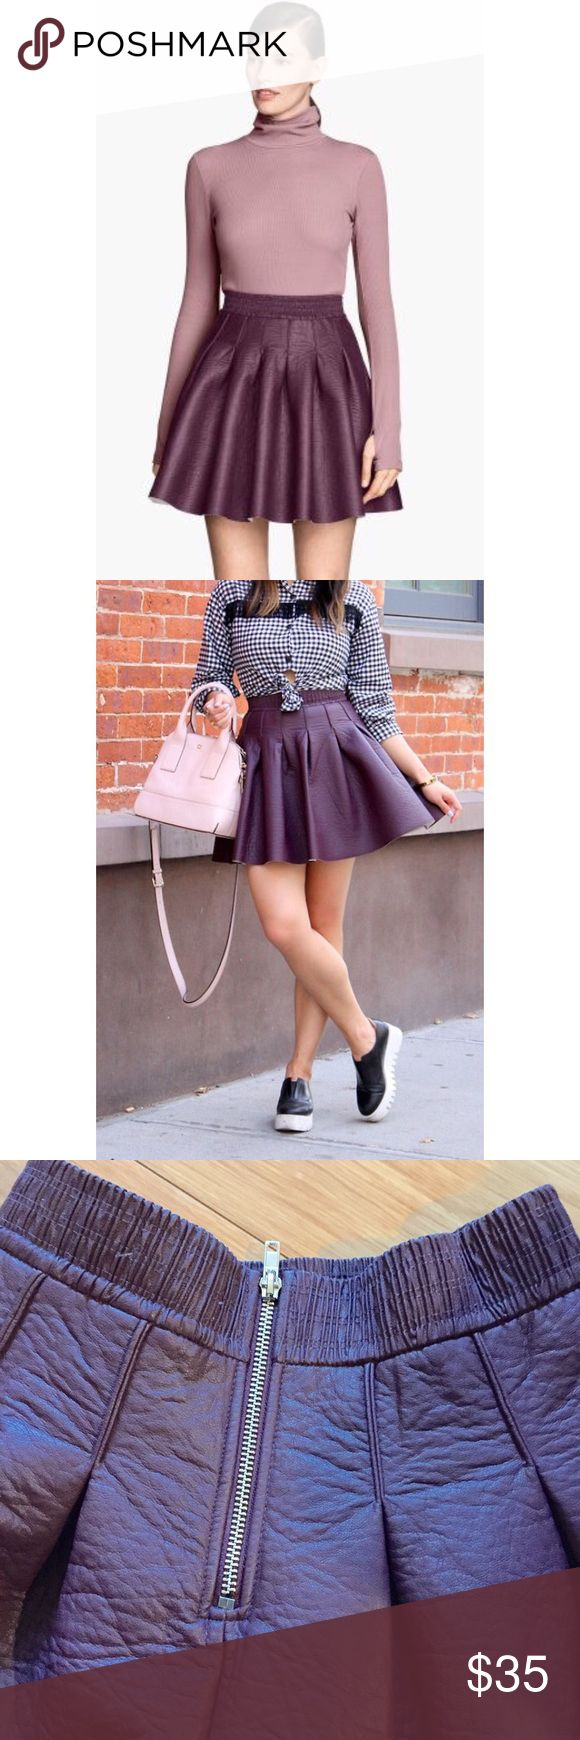 17 best ideas about leather skater skirts on